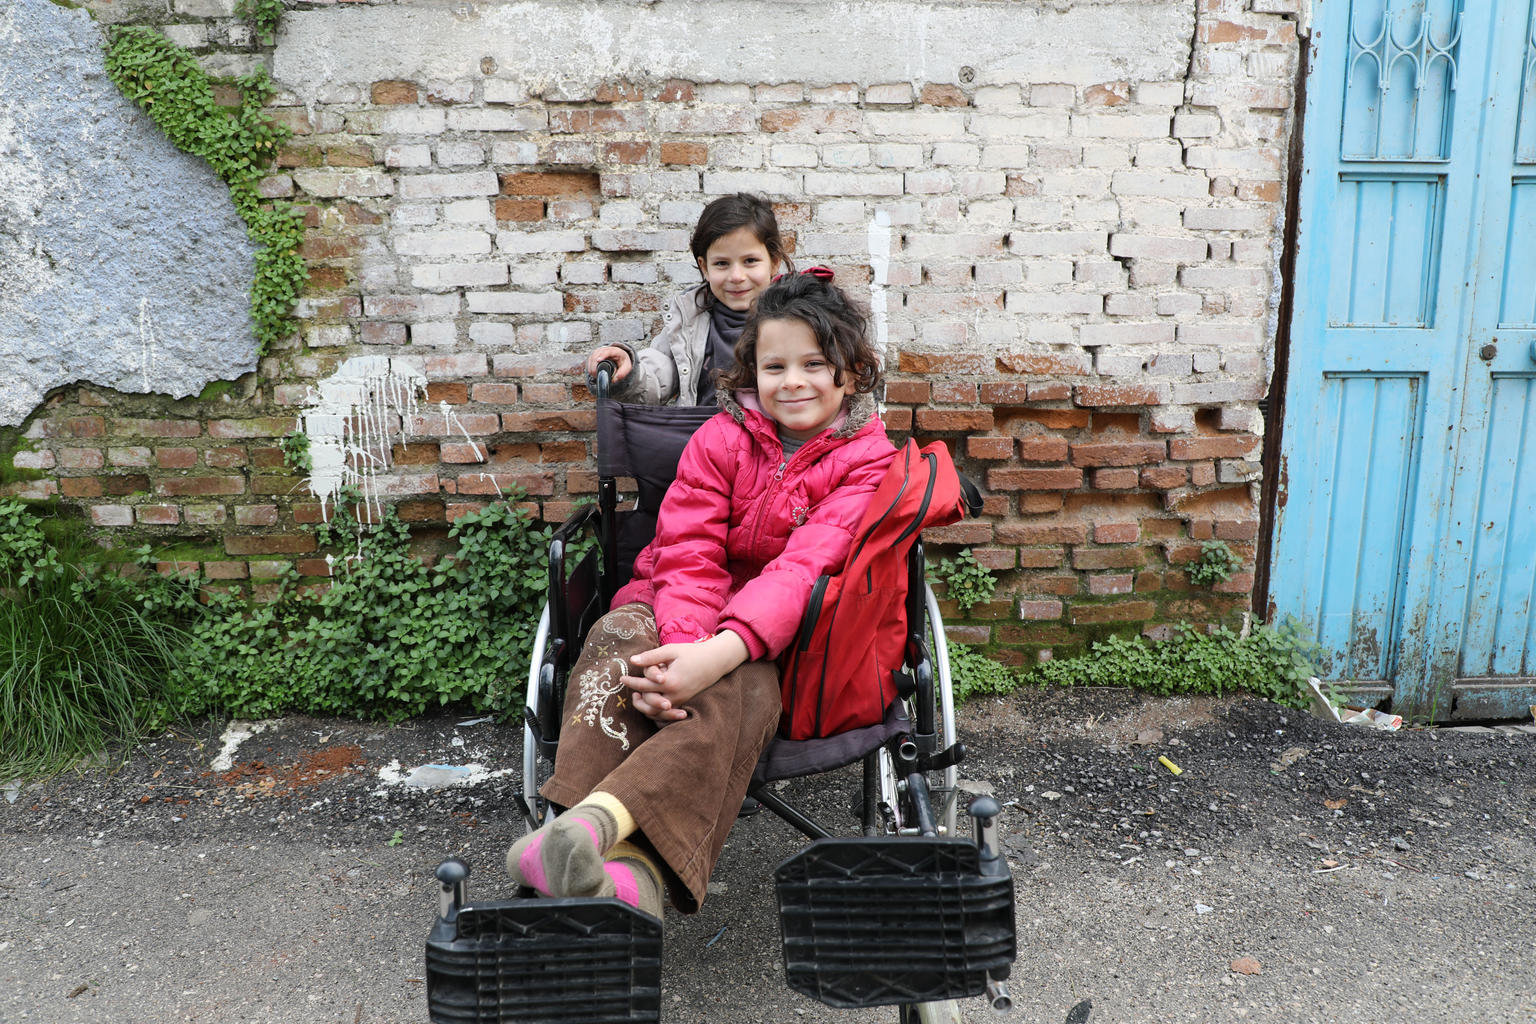 Two young girls - one sitting on, and the other behind a wheelchair.